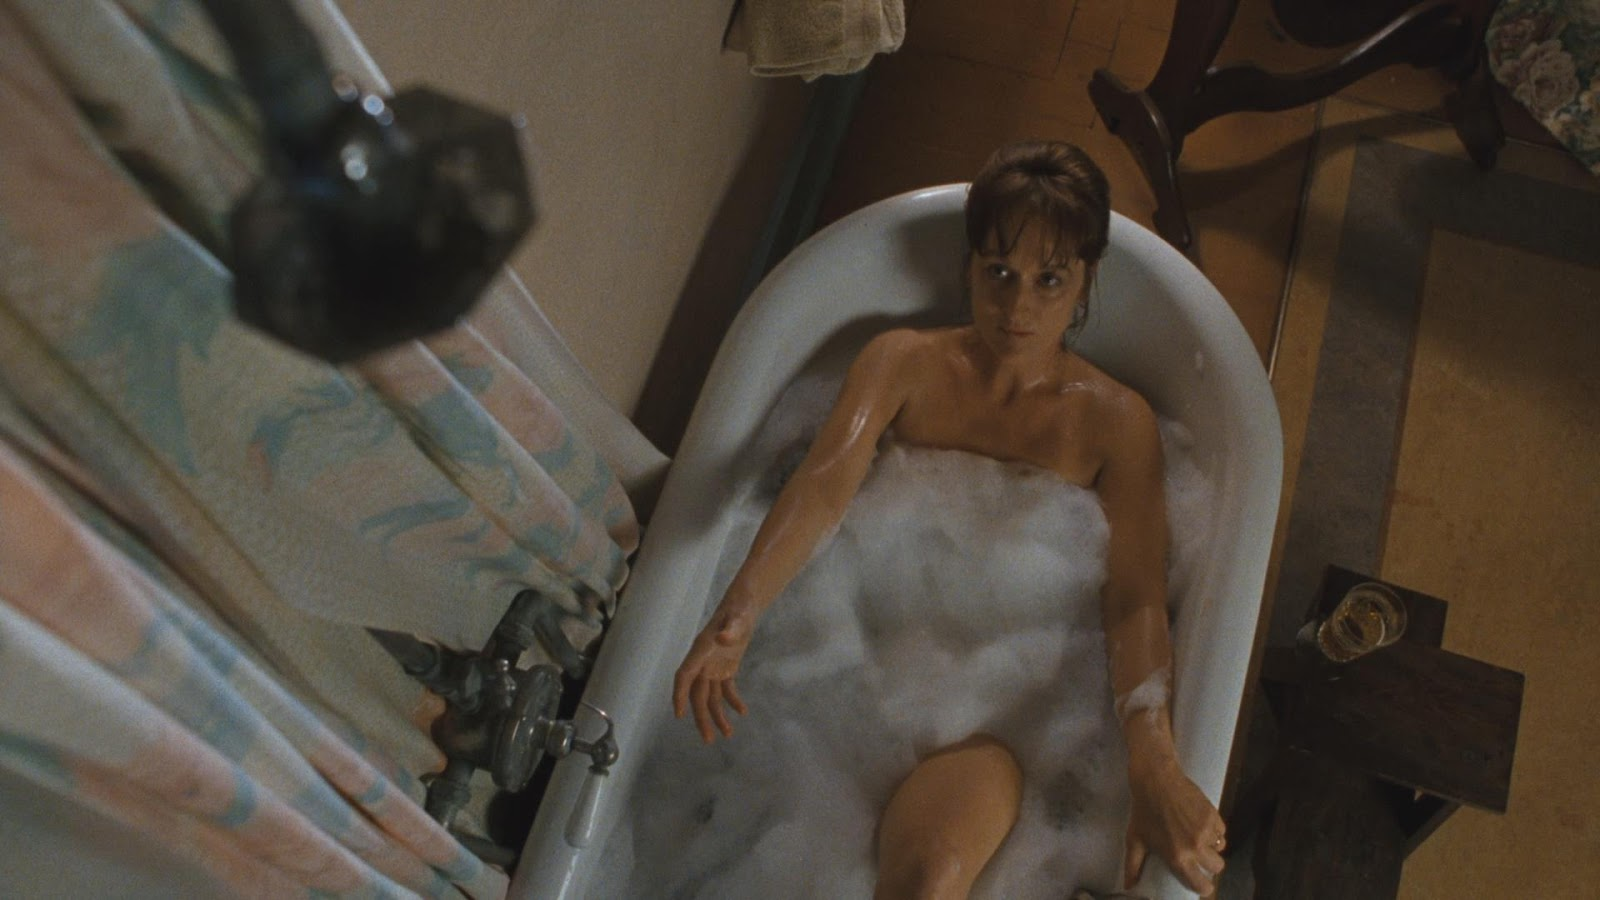 from Orlando nudity in the movie madison county